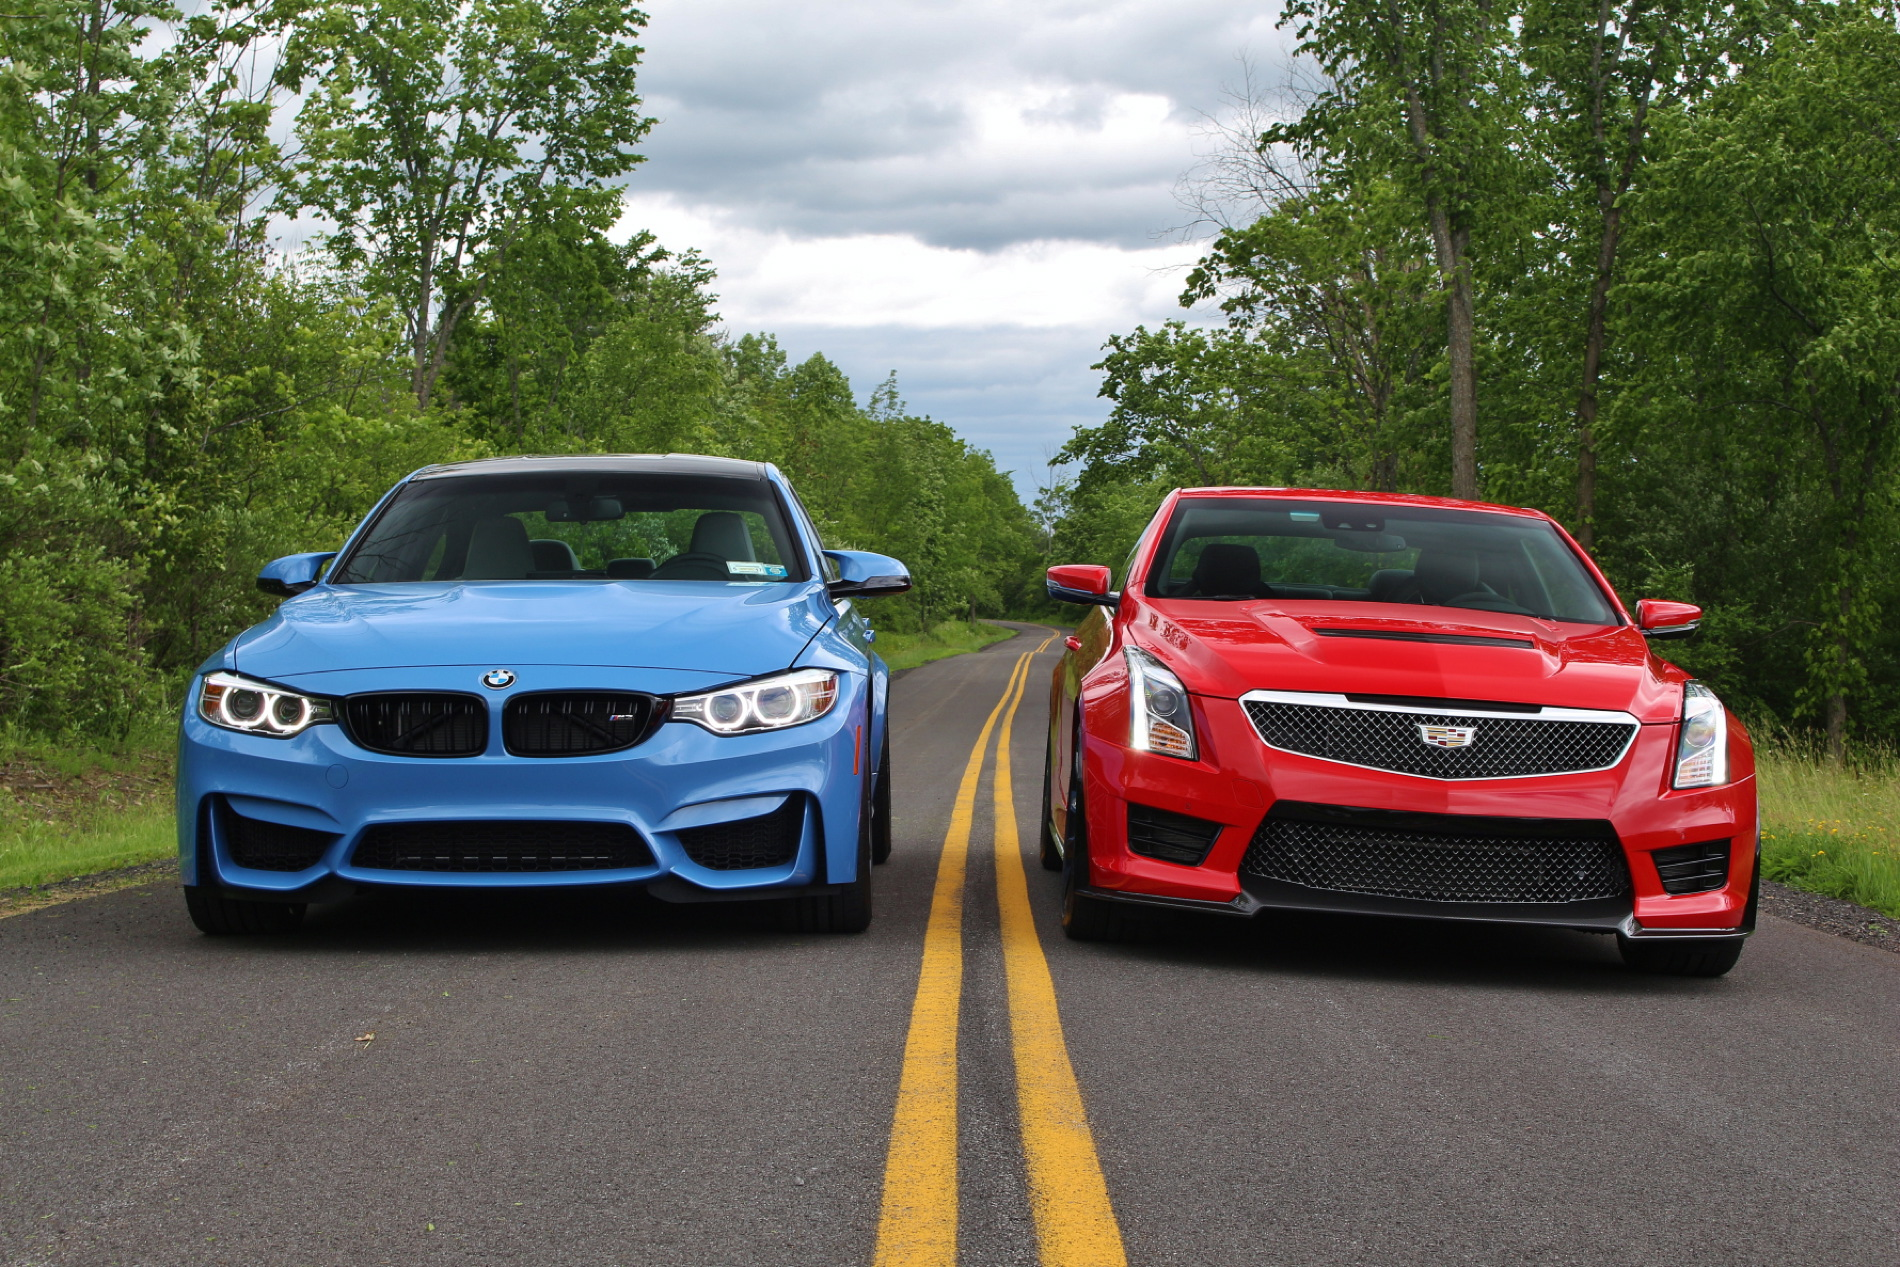 2016 Bmw M3 Competition Package Vs Cadillac Ats V Test Drive